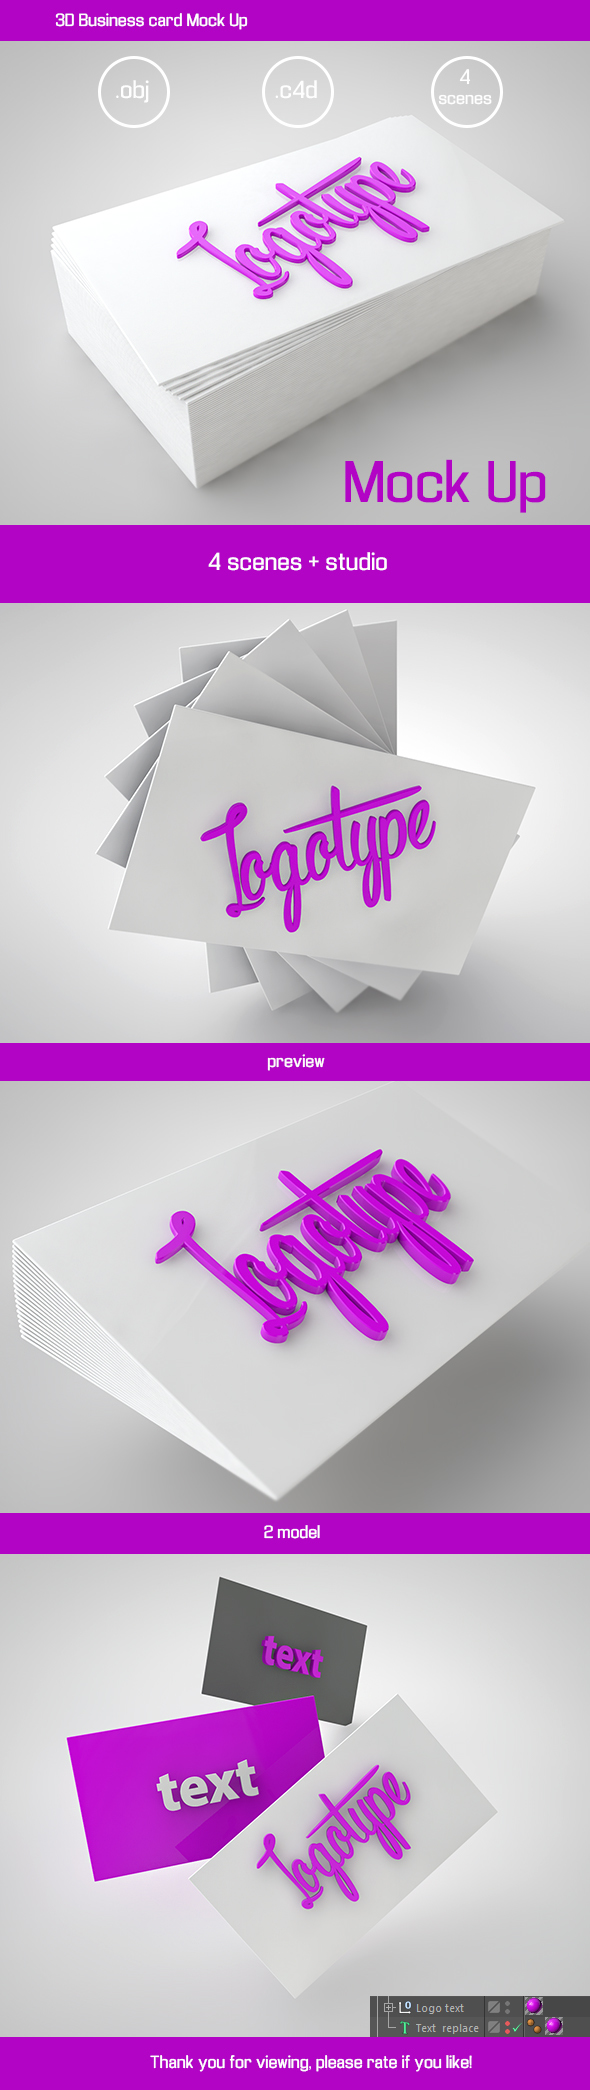 3D Business card Mock Up - 3DOcean Item for Sale